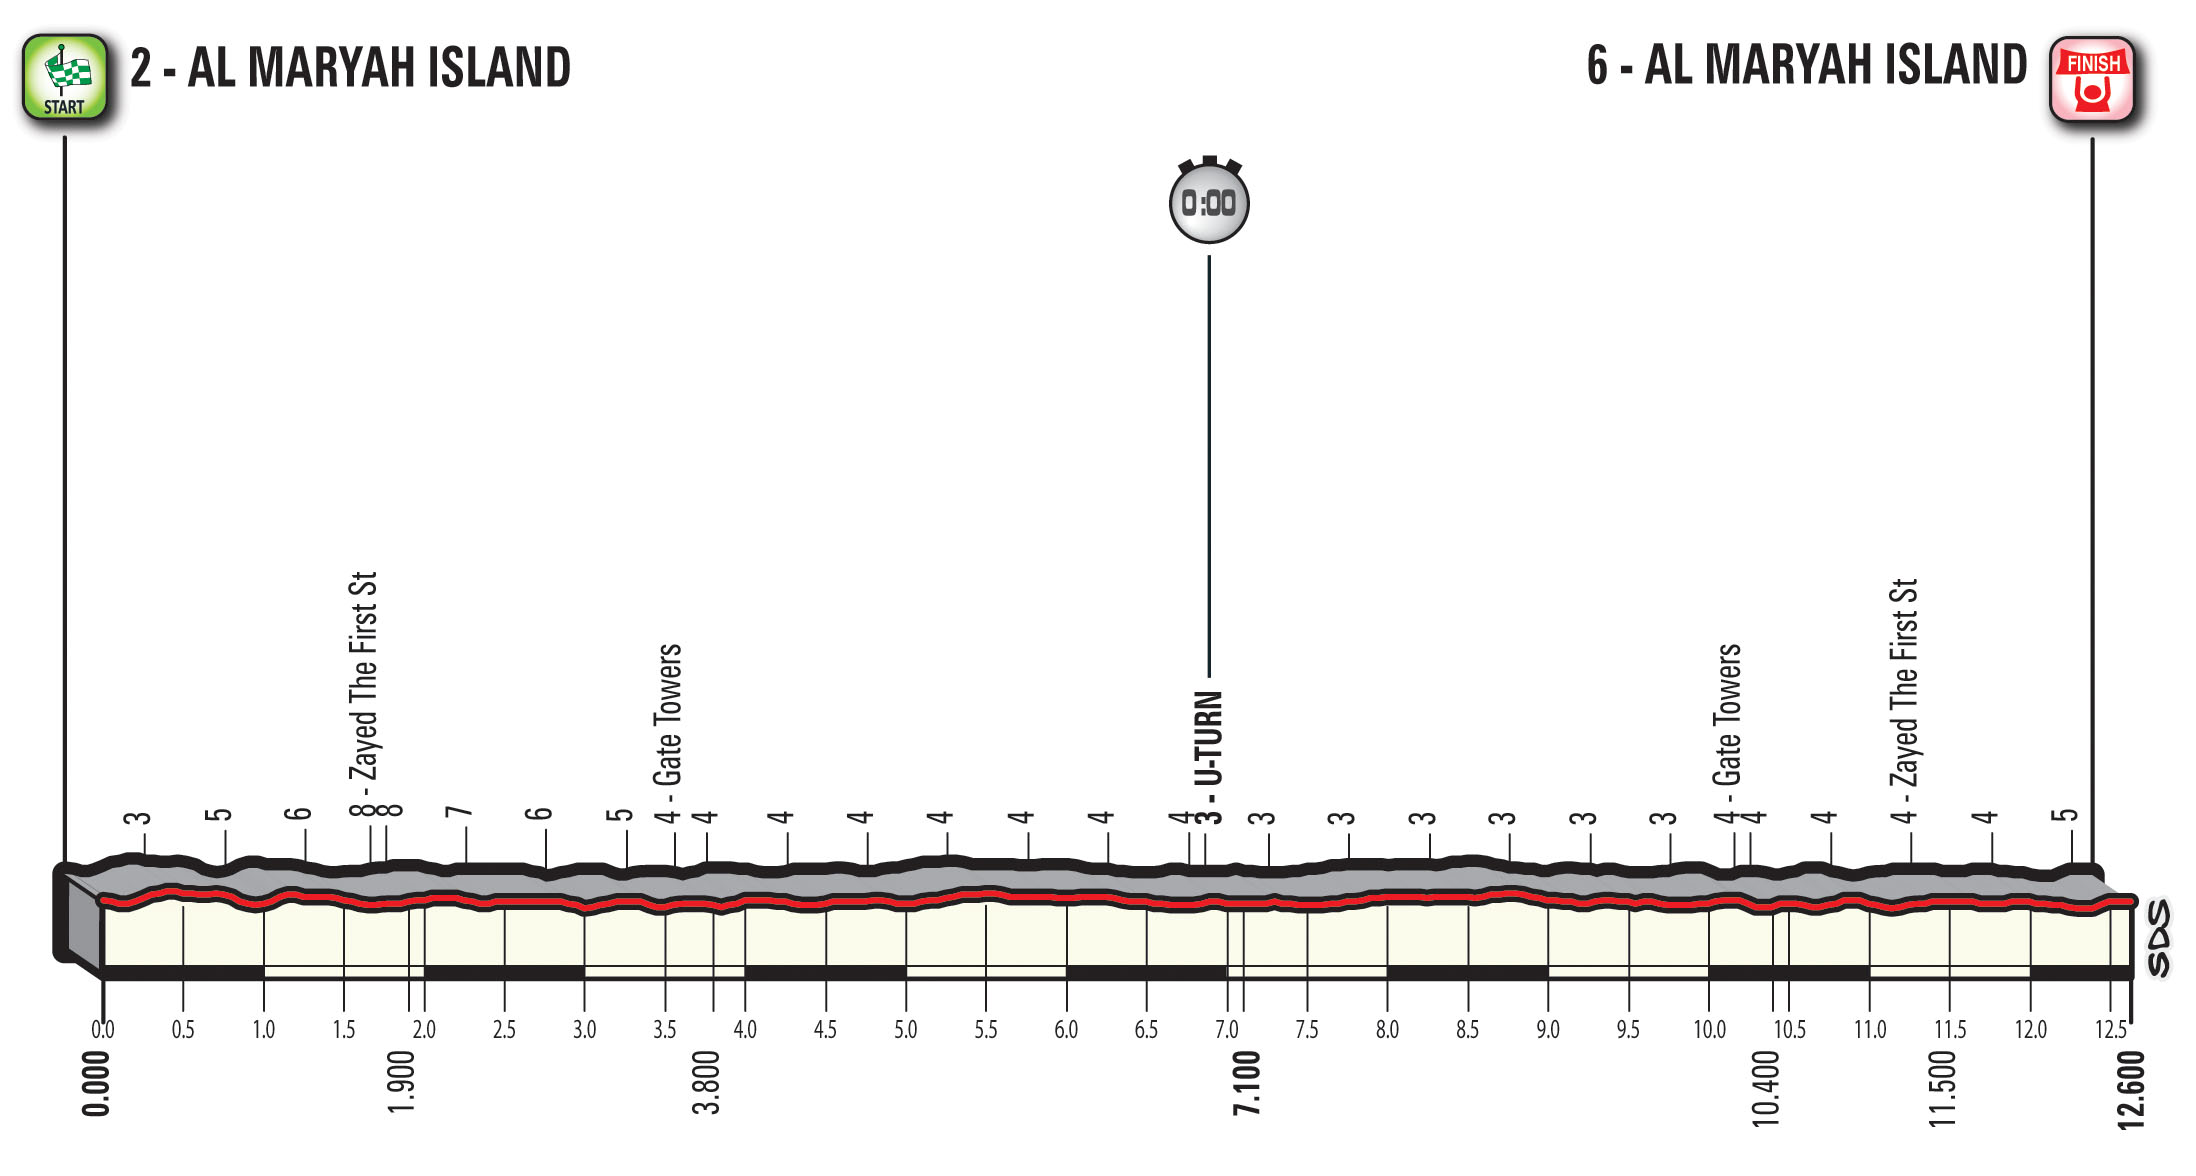 Abu Dhabi Tour Abu-dhabi-tour-2018-stage-4-profile-cd5592f534